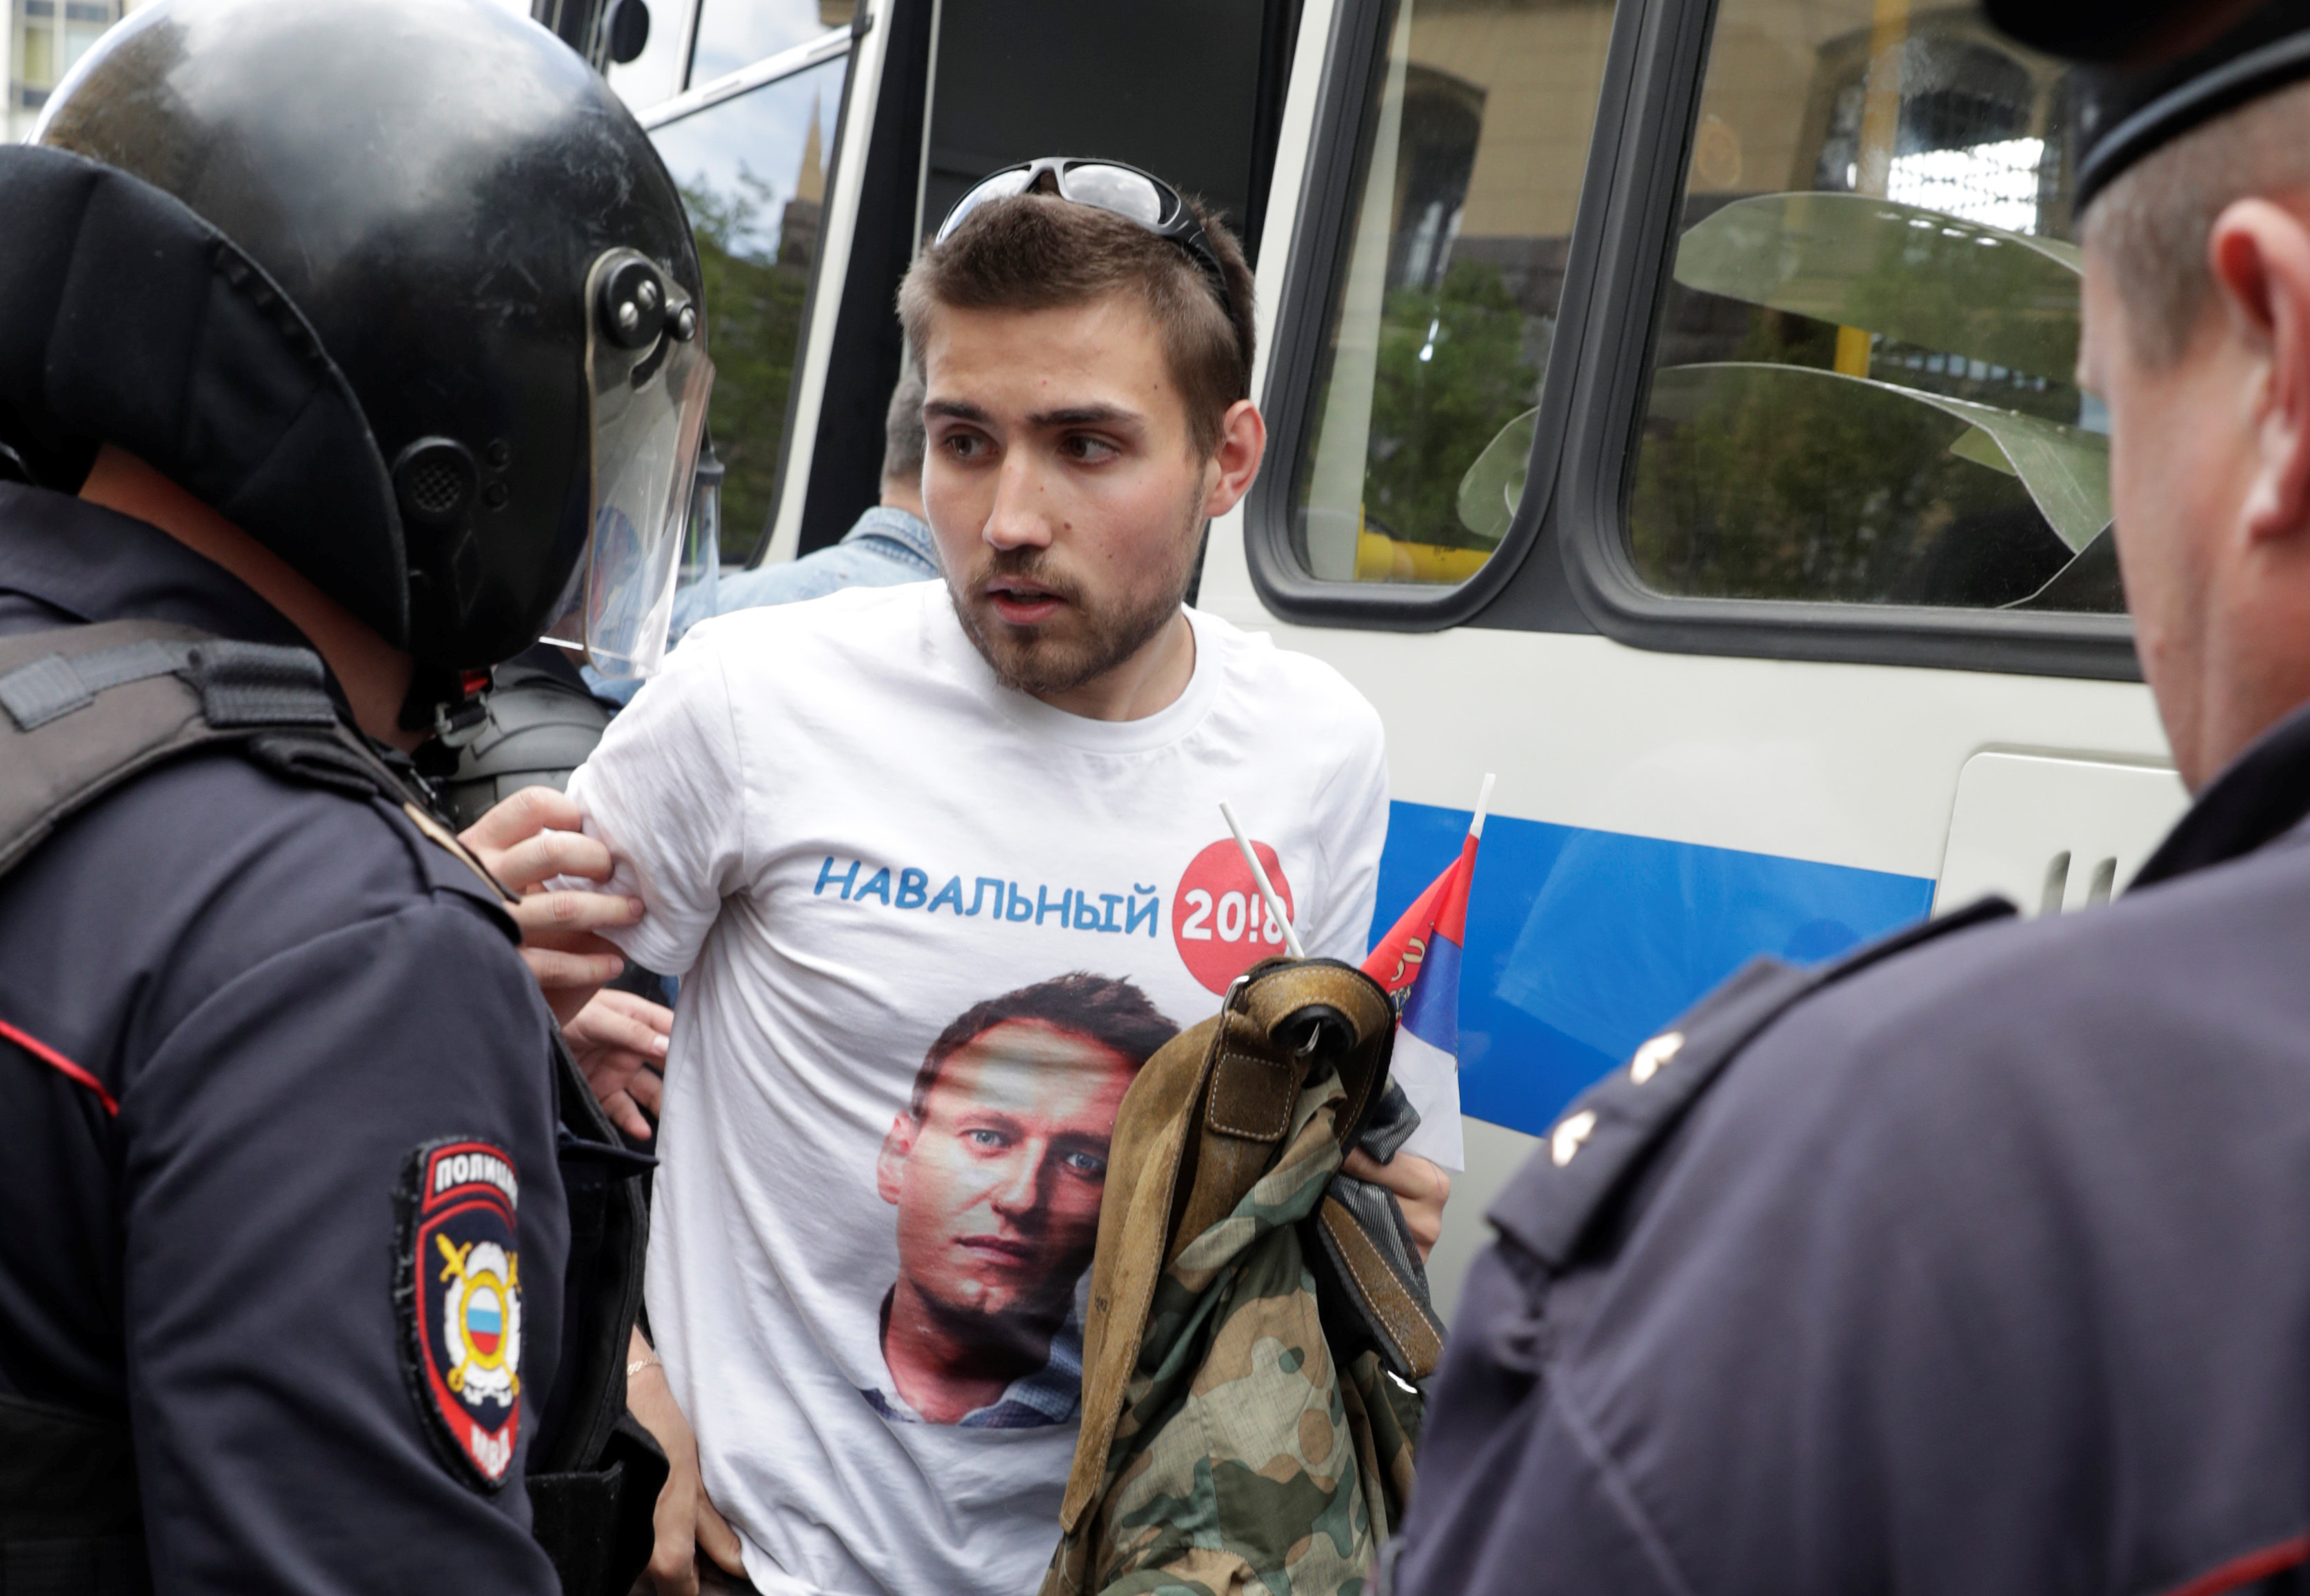 Riot police detain a man dressed in a t-shirt depicting opposition leader Alexei Navalny, during the Navalny-led anti-corruption protest in central Moscow, Russia on June 12, 2017. (REUTERS/Tatyana Makeyeva)